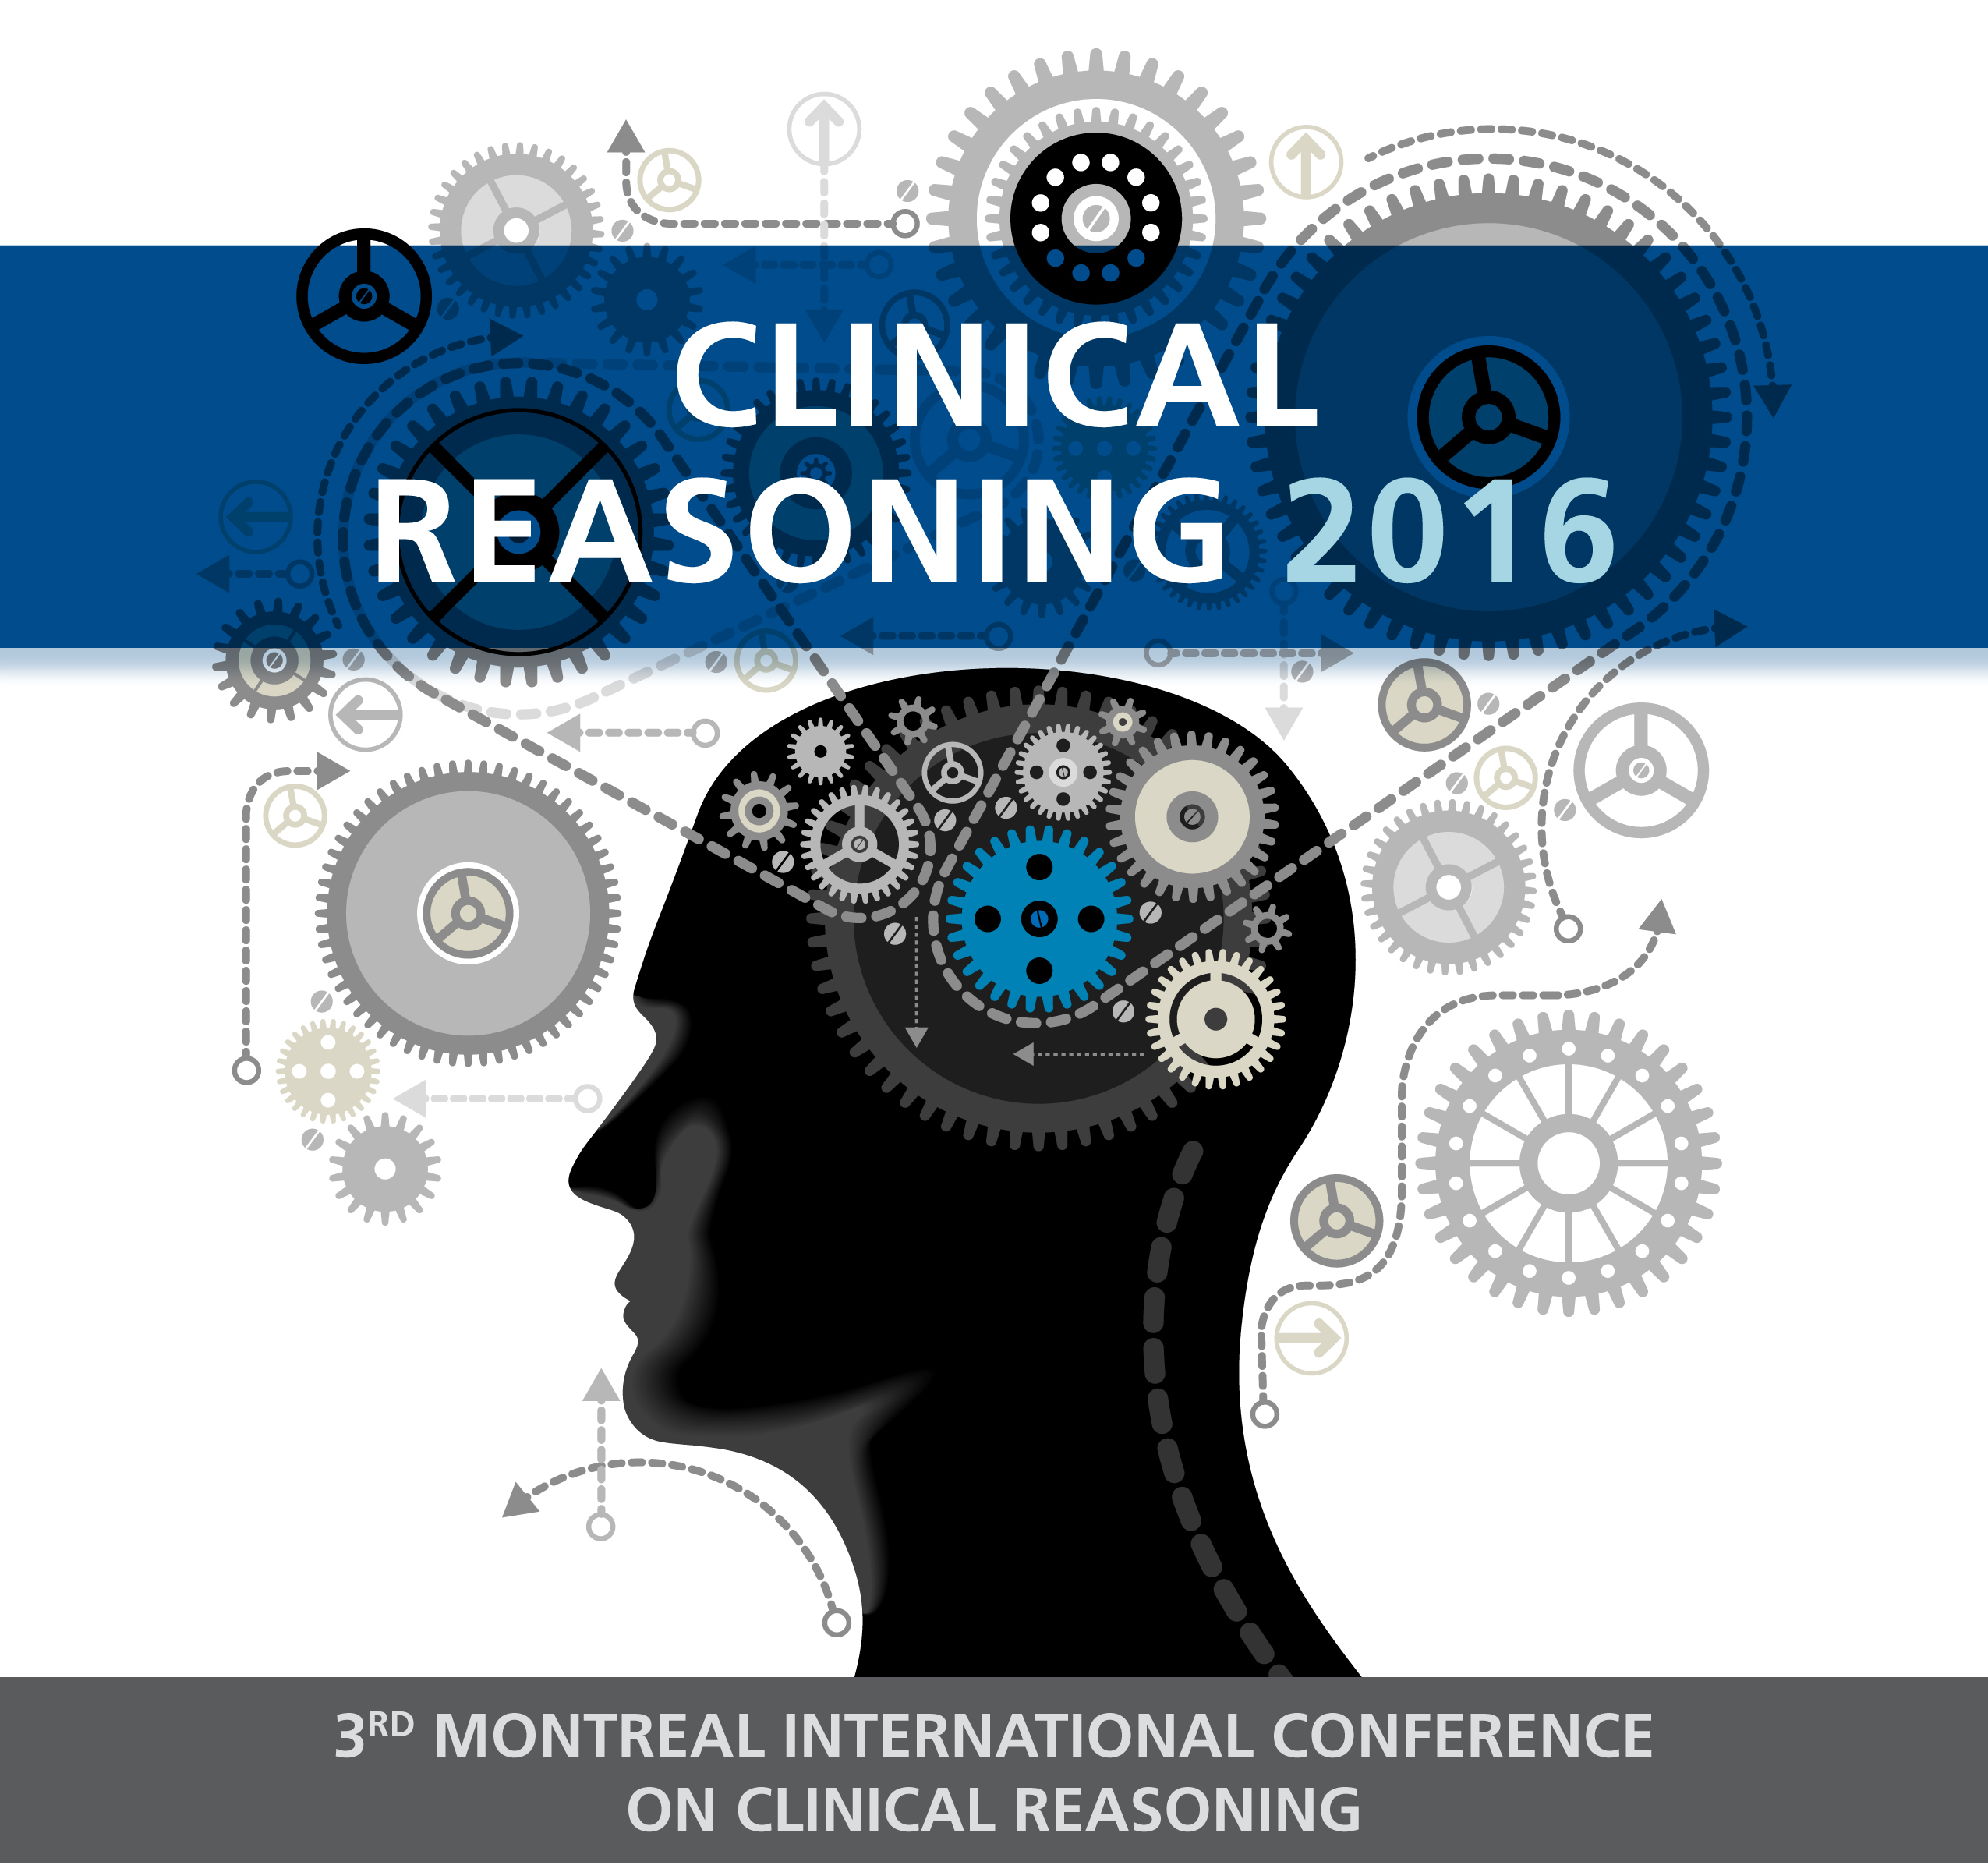 Clinical Reasoning 2016